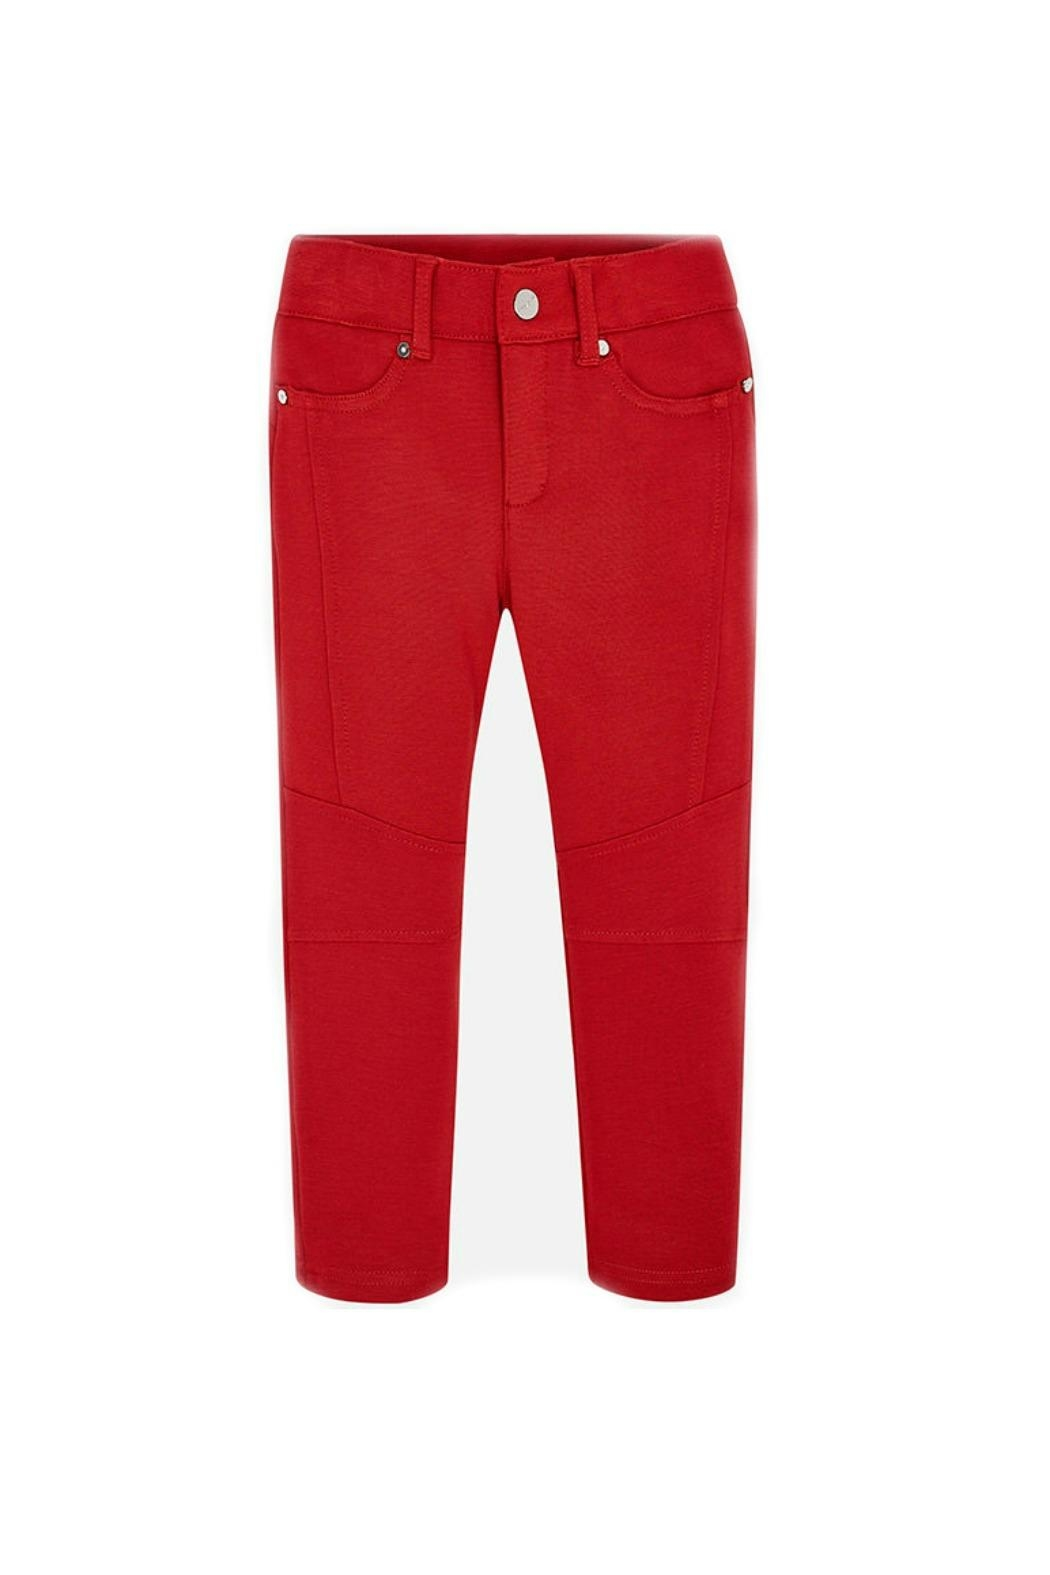 Mayoral Girls Jegging-Style Trousers - Main Image